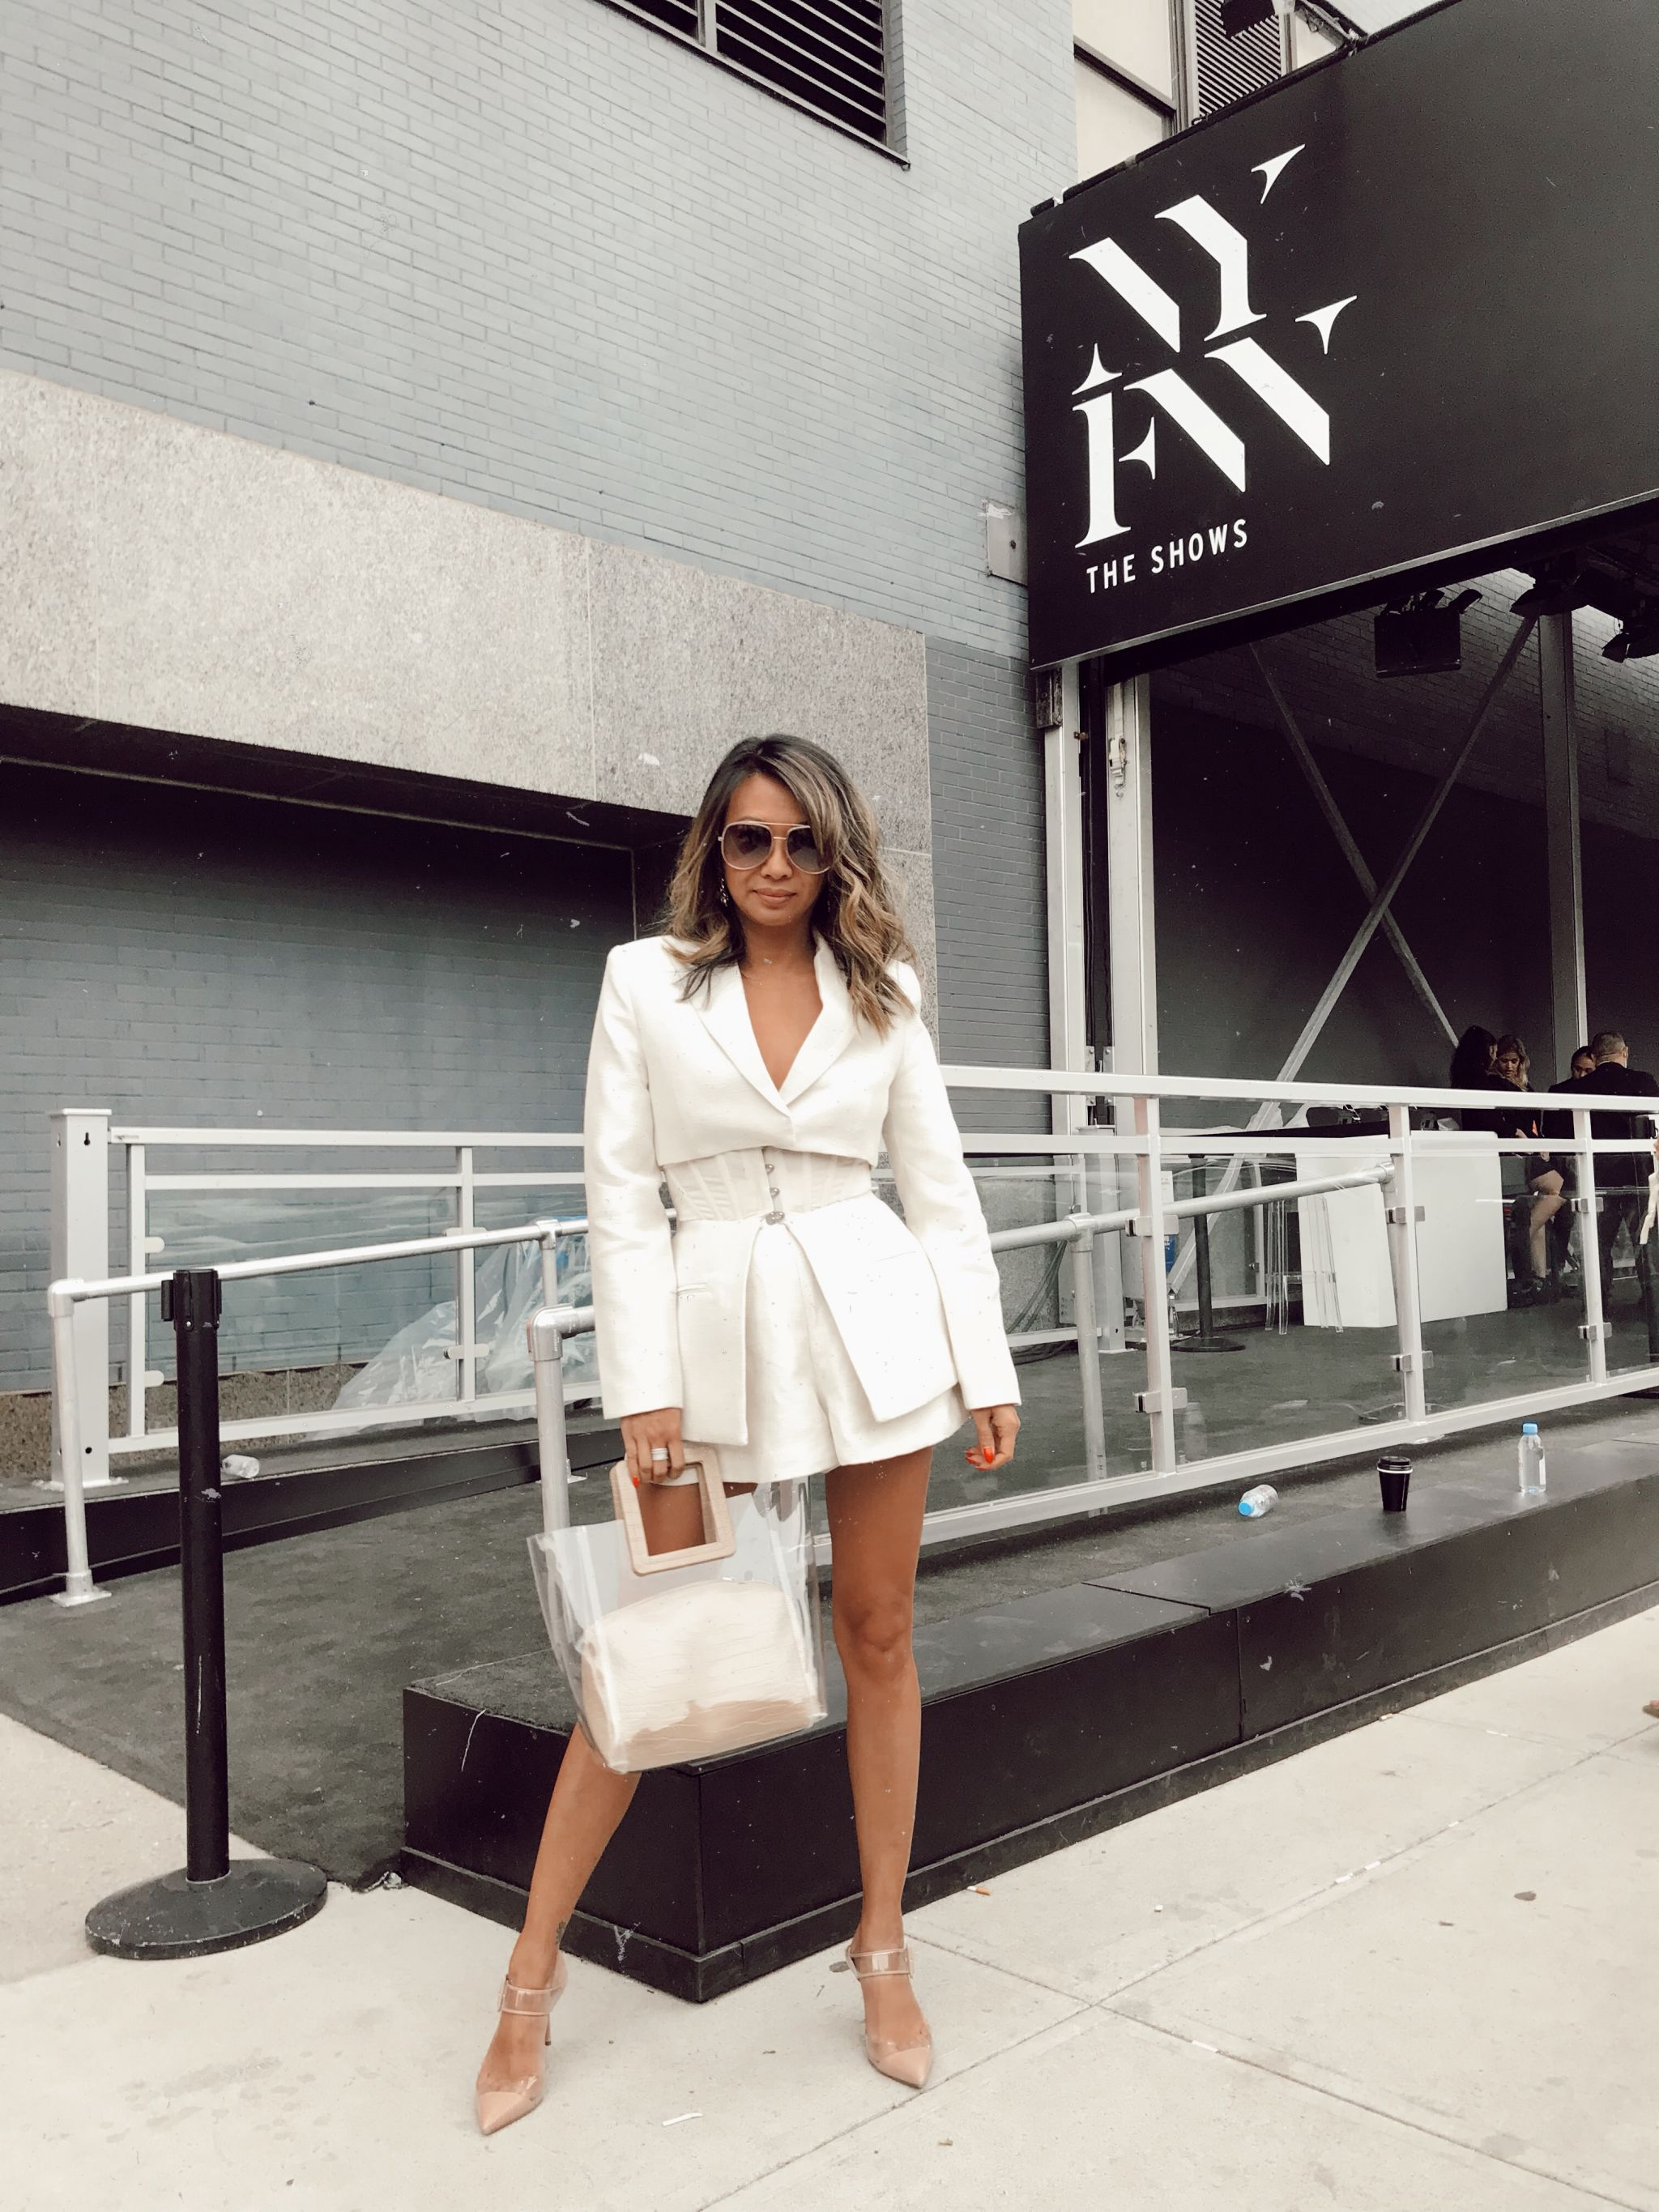 Streetstyle NYFW, NYFW 2018, Best Streetstyle NYFW, Acler Suit, Spring Studios NYC, Chicago Fashion Blogger, Jennifer Worman, New York Fashion Week 2018